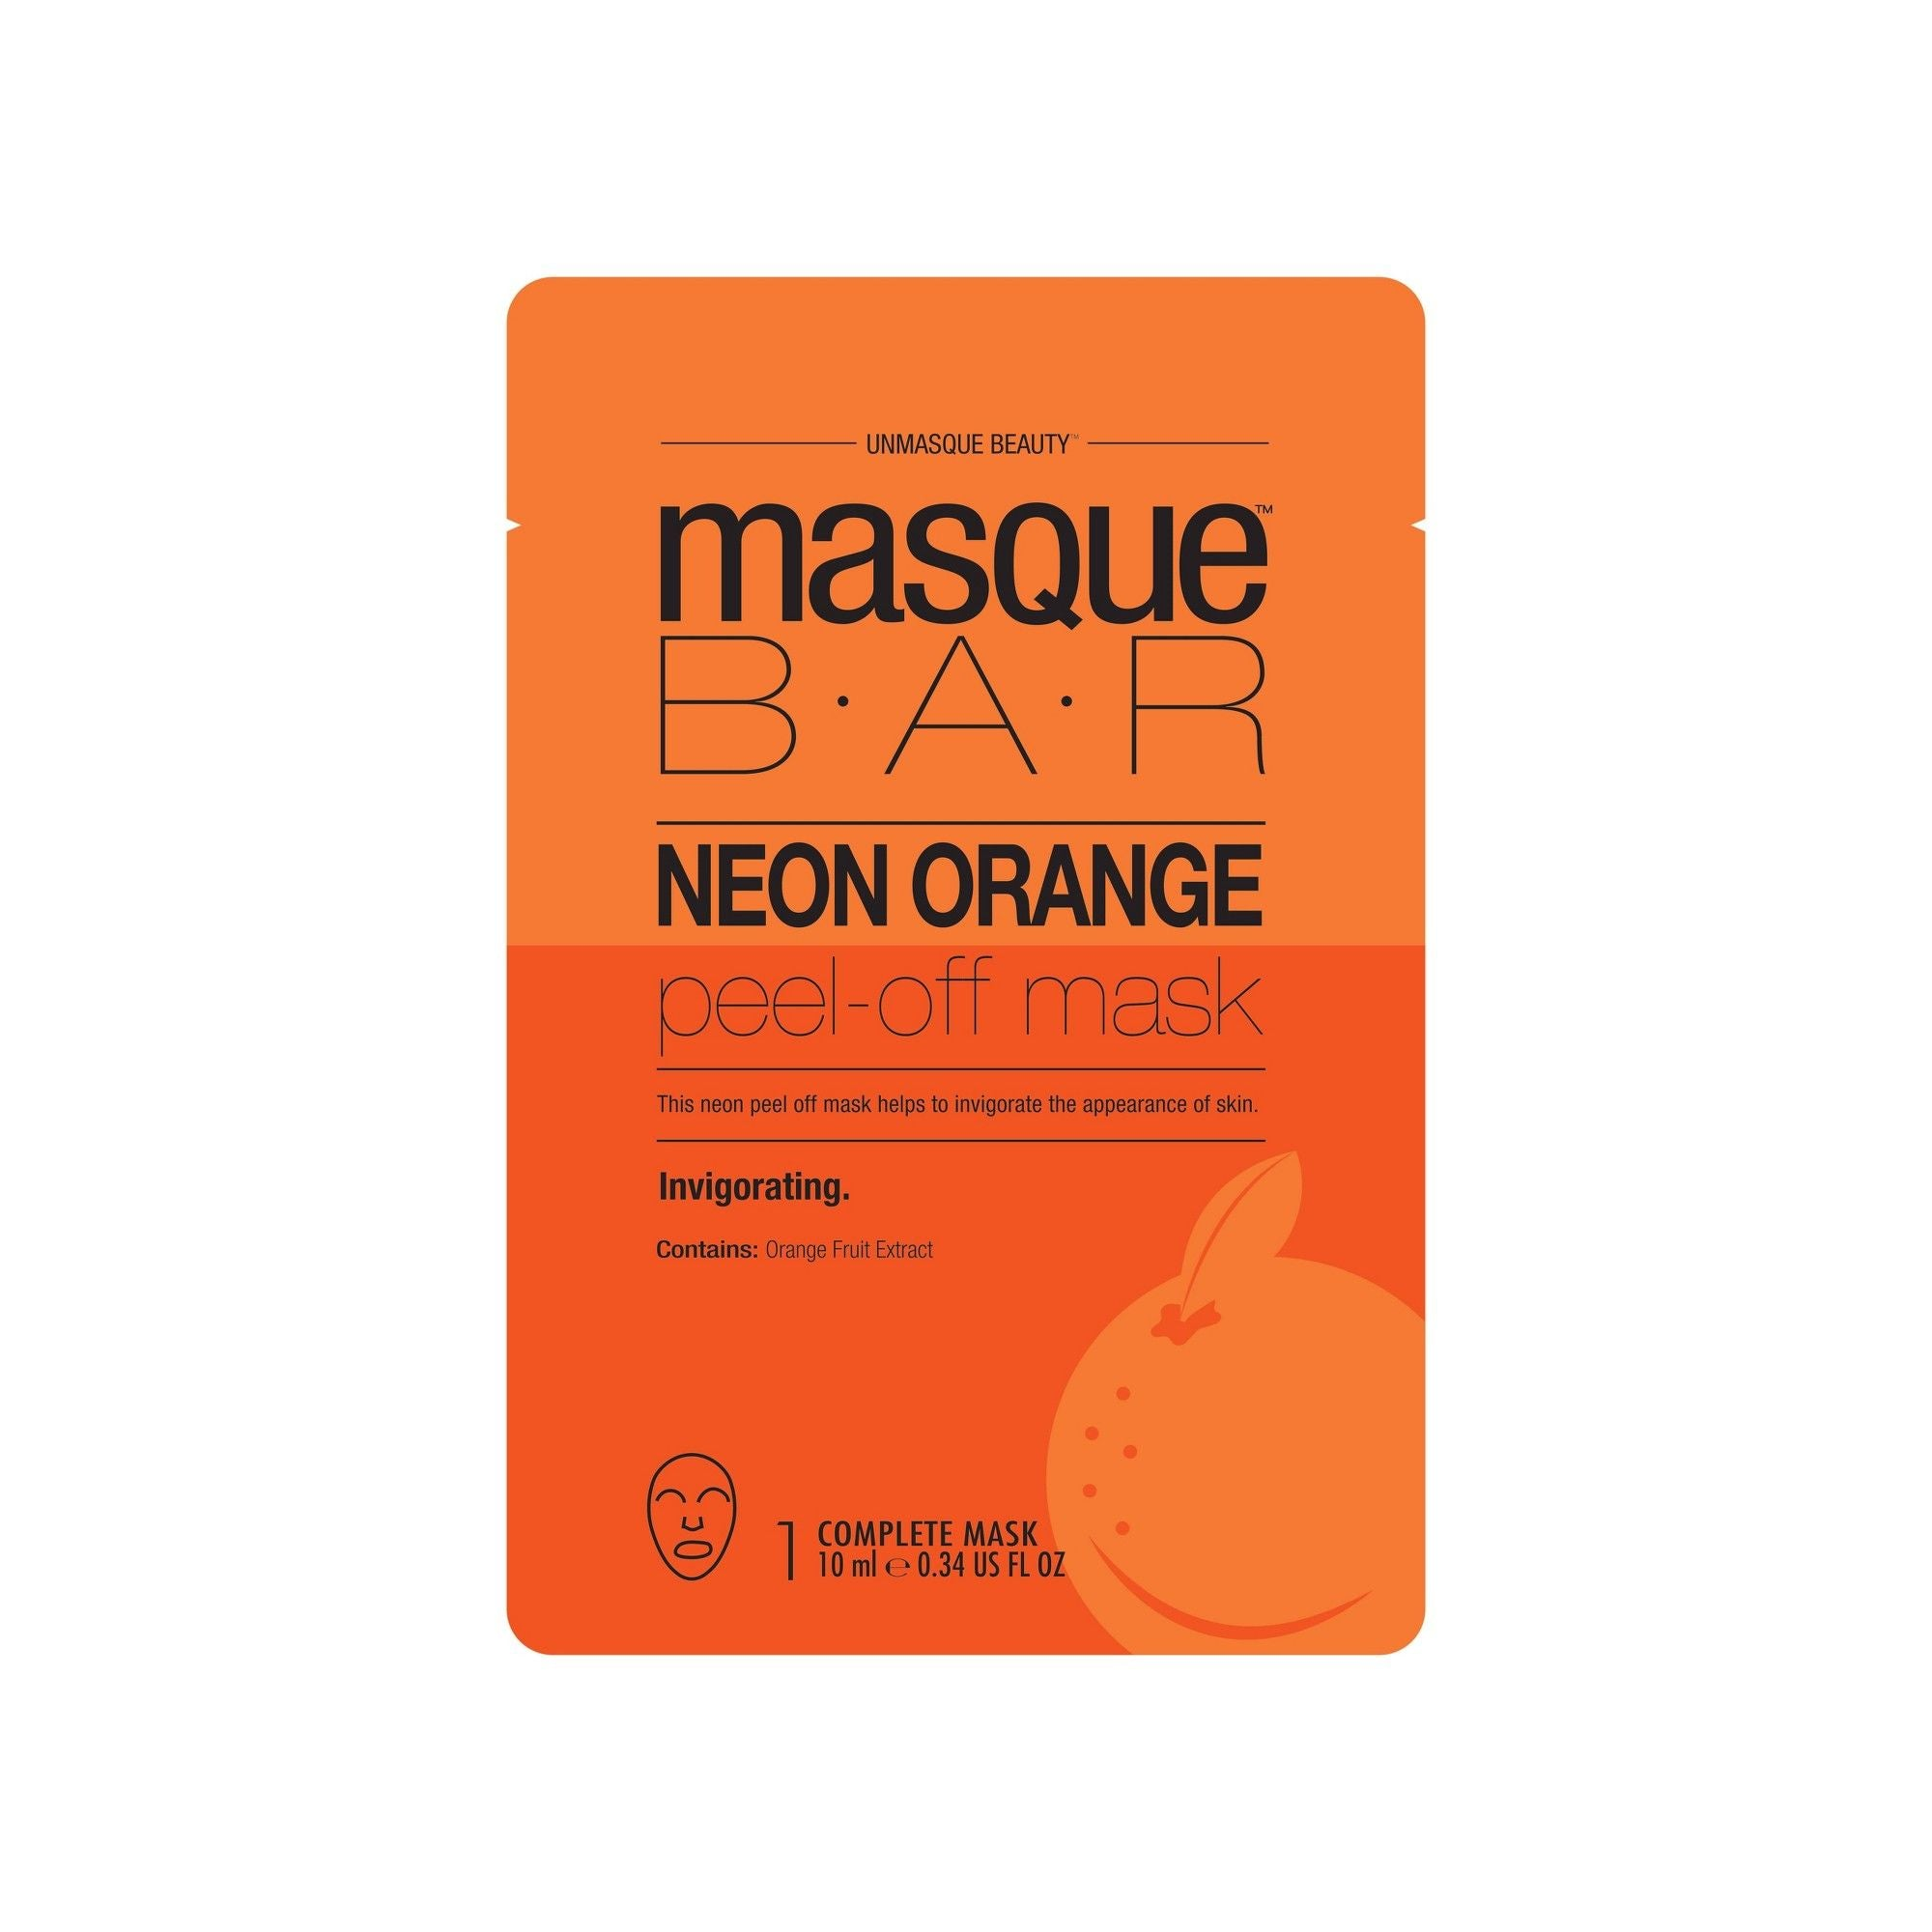 Masque Bar Neon Orange Peel-off Mask